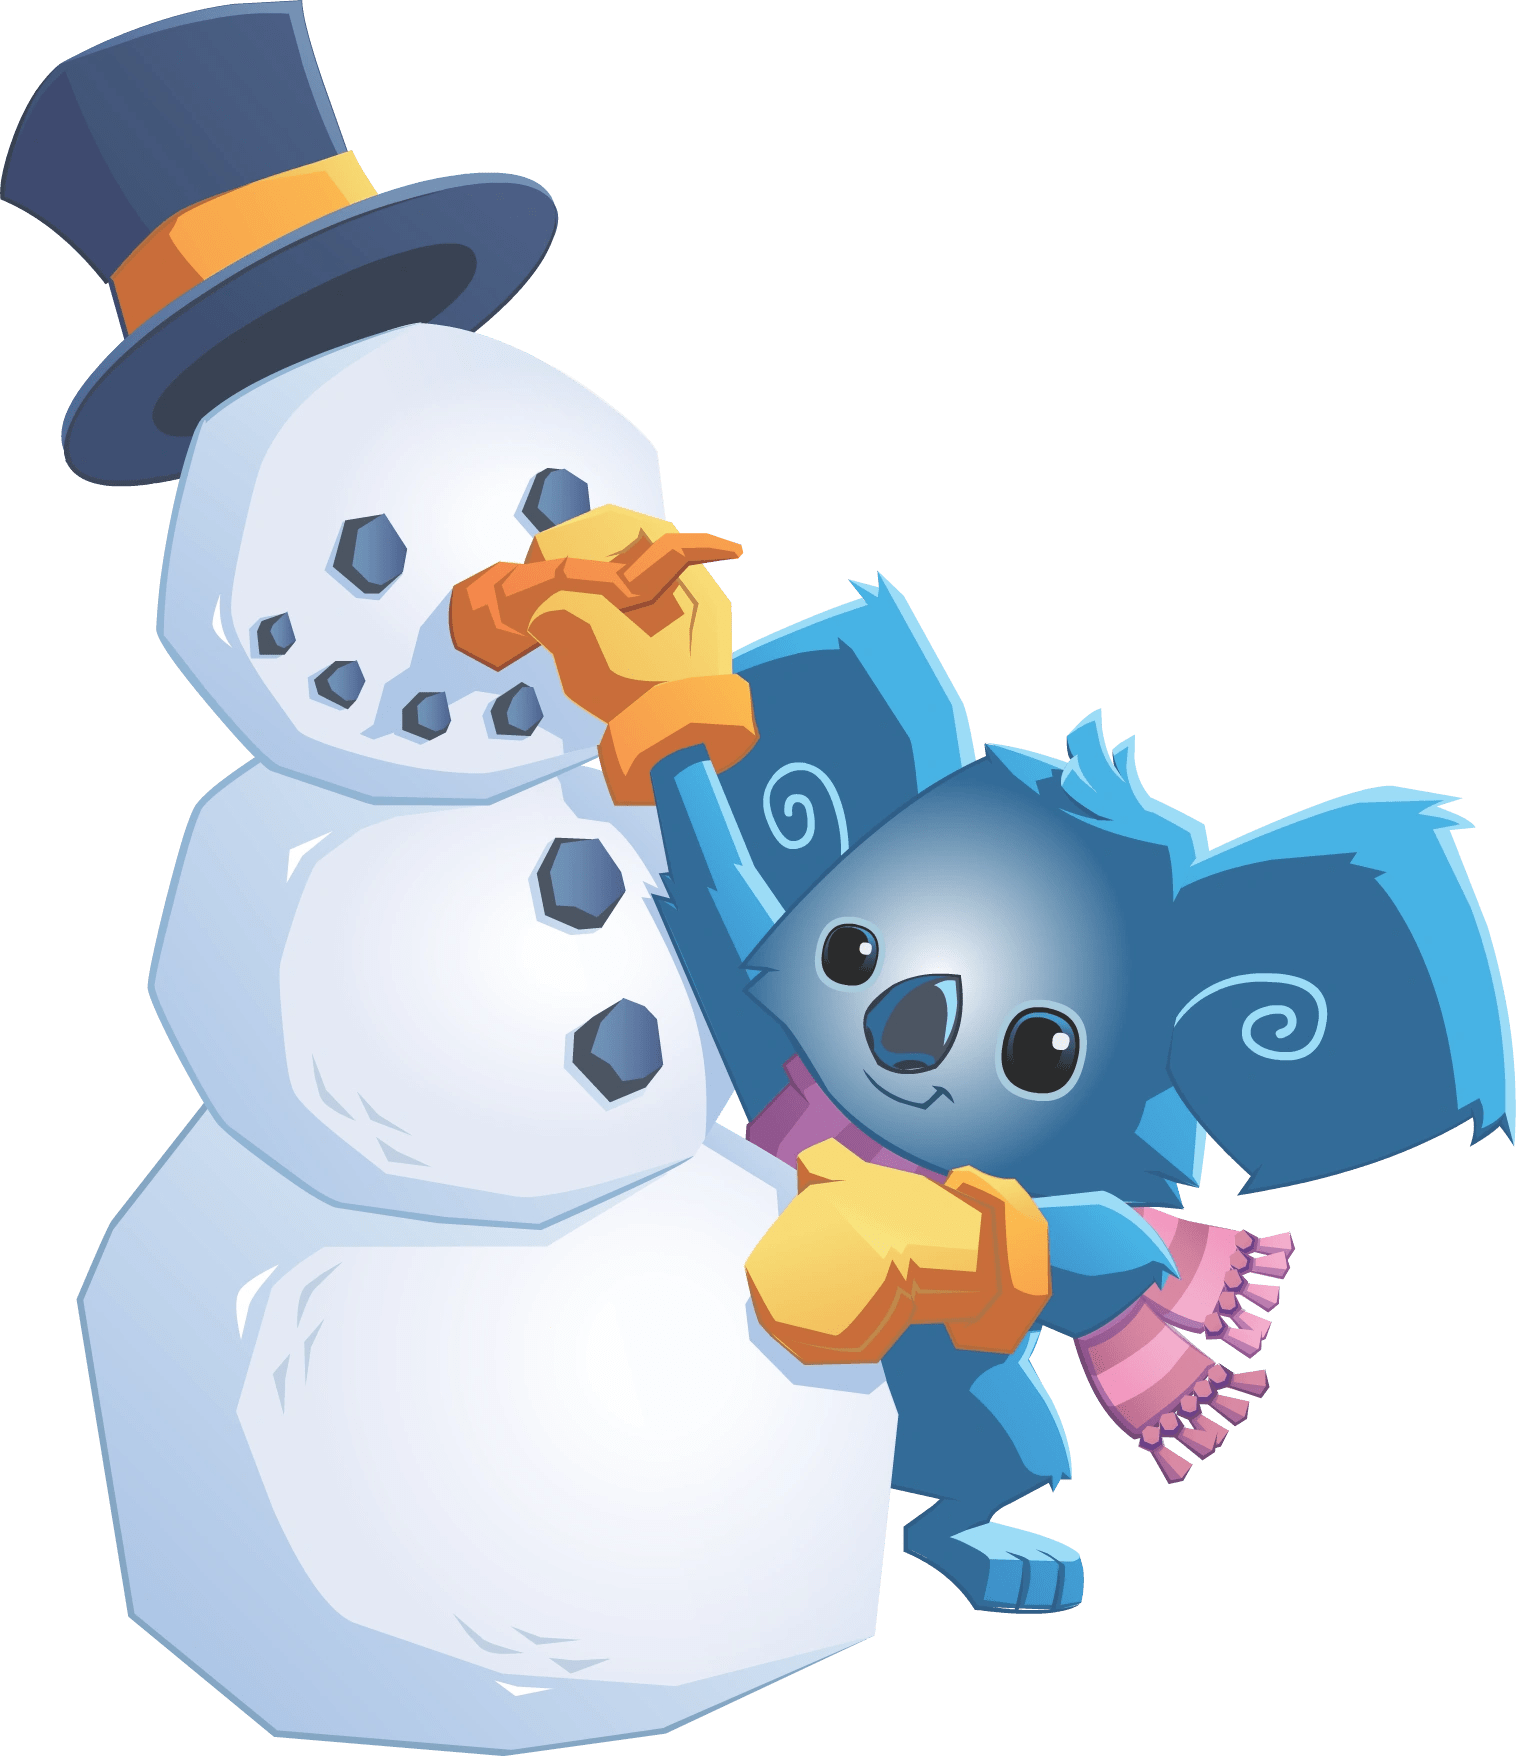 Image of: Sitting Transparent Animal Jam Koala Kisspng 20 Transparent Animal Jam Art Plaque Pictures And Ideas On Meta